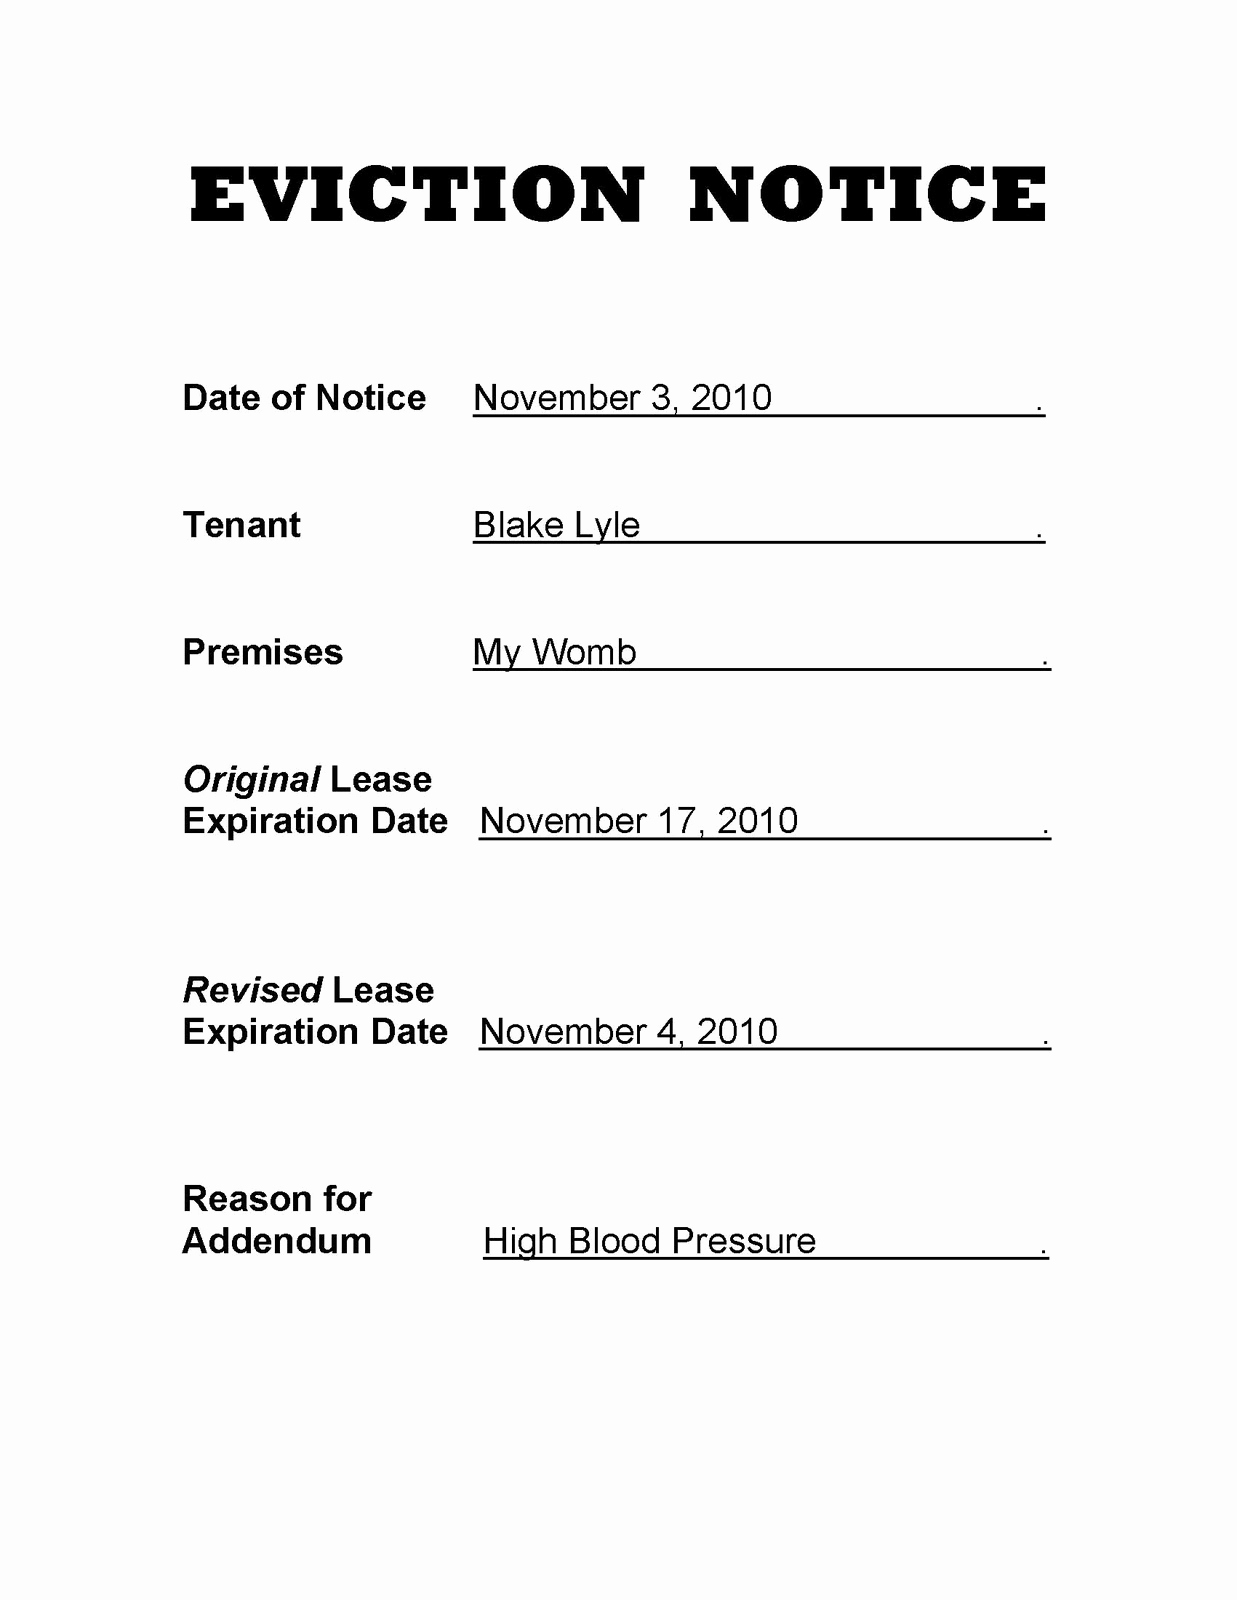 Baby Eviction Notice Template New Does This Count as A Baby Book E Hundred Three It S